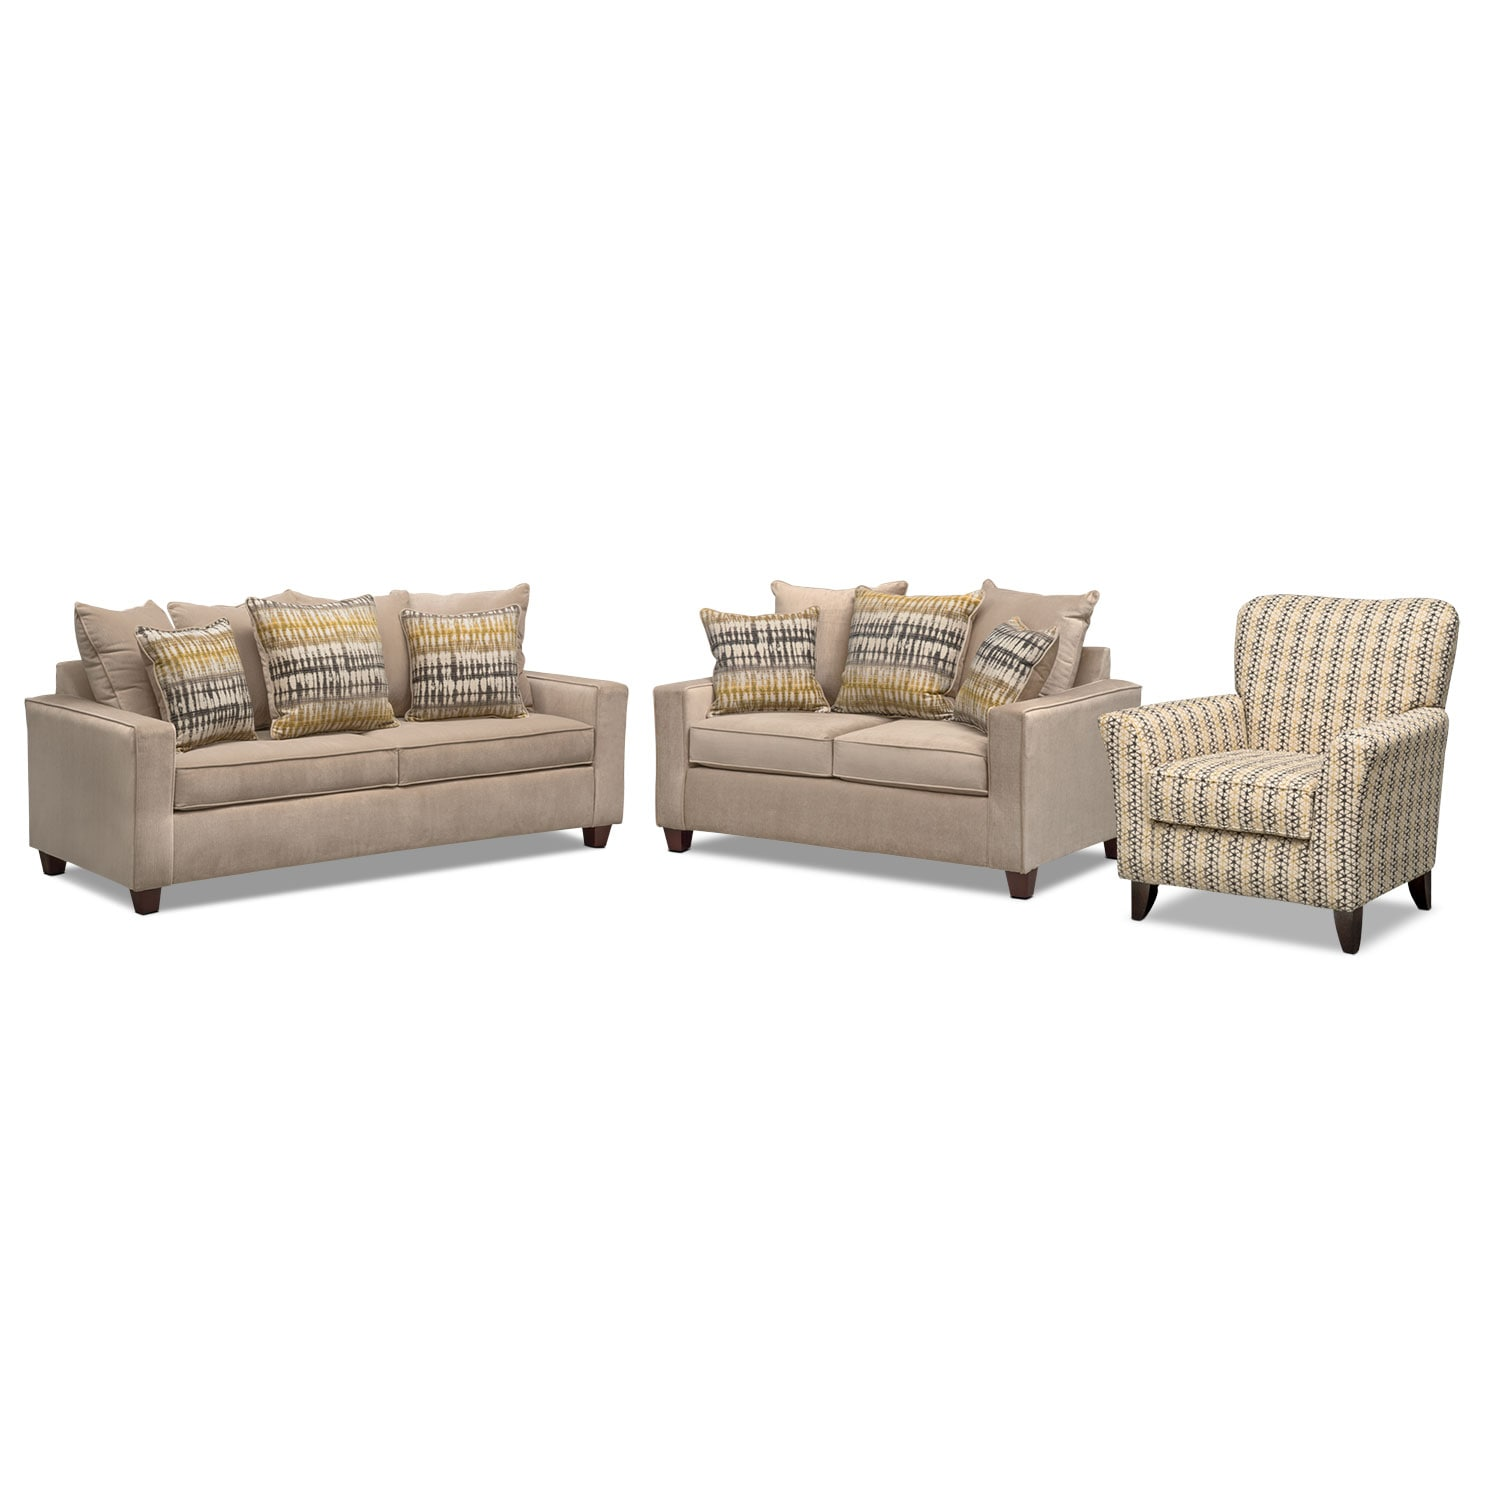 Sleeper Sofa Loveseat And Accent Chair